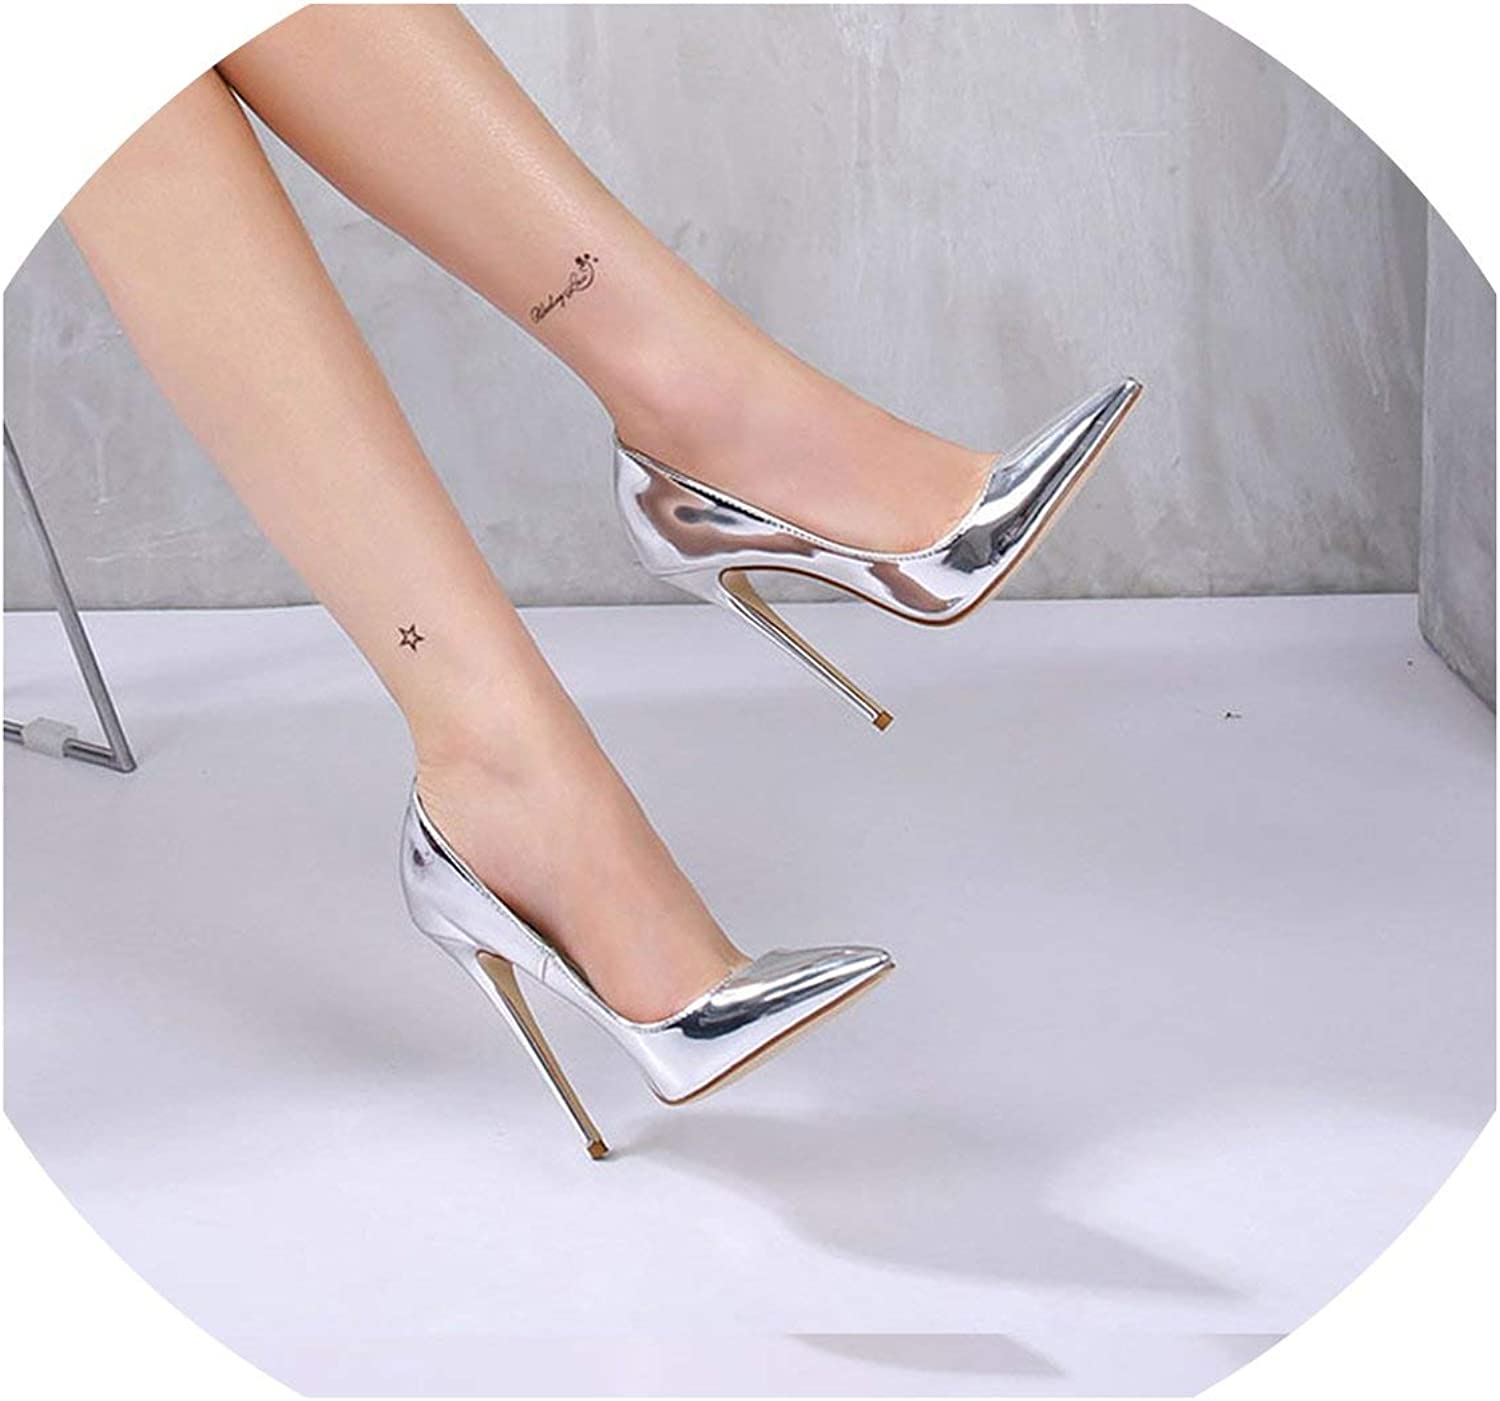 Women Pumps High Heels Silver Sexy High Heels shoes for Womens shoes Big Size